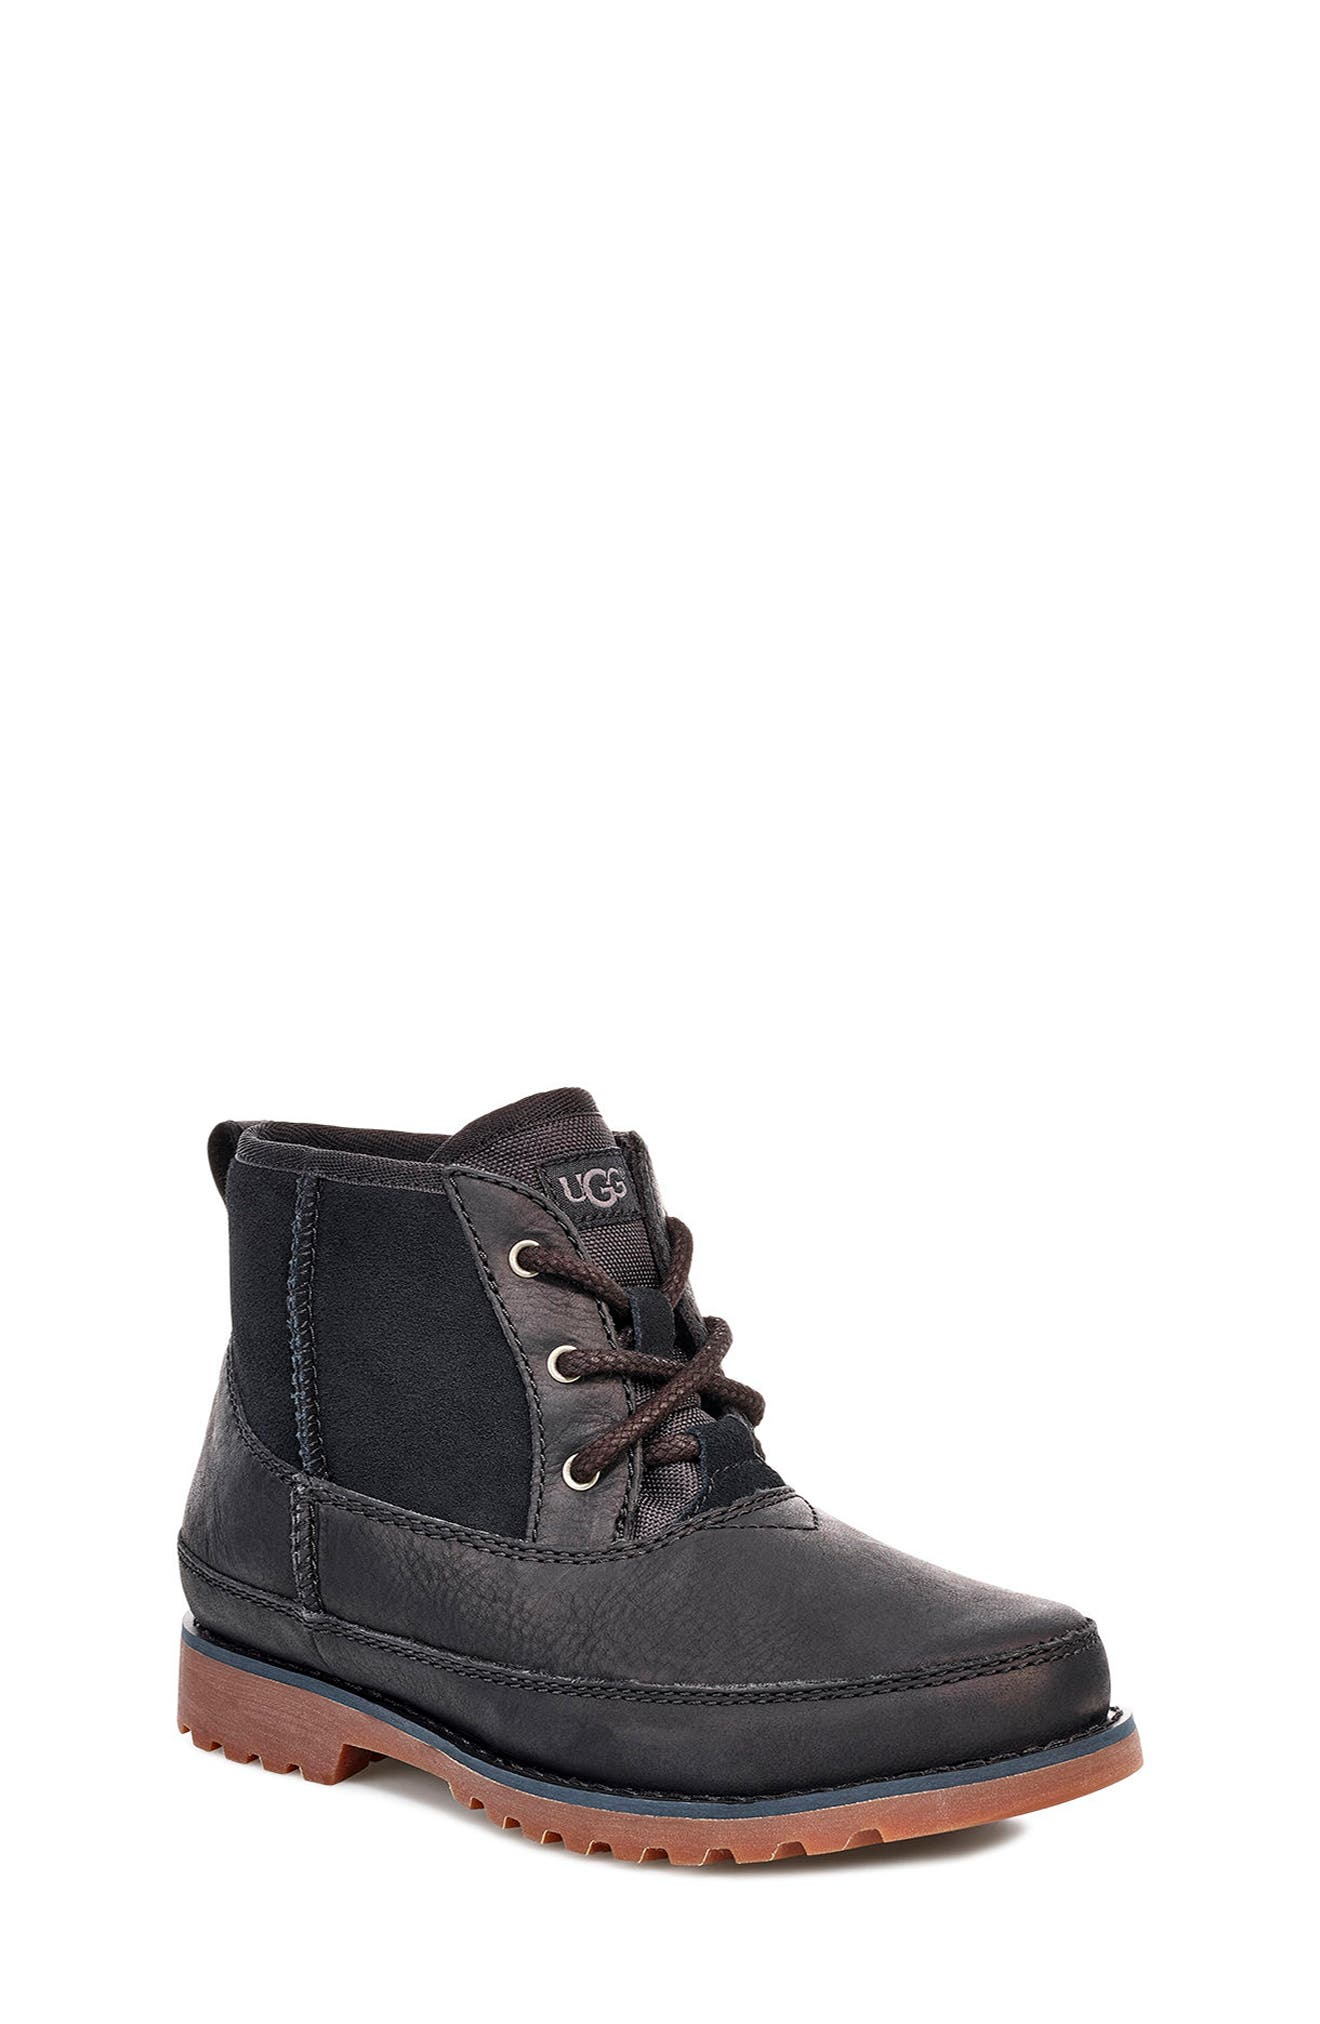 UGG<SUP>®</SUP>, Bradley Waterproof Boot, Alternate thumbnail 5, color, BLACK